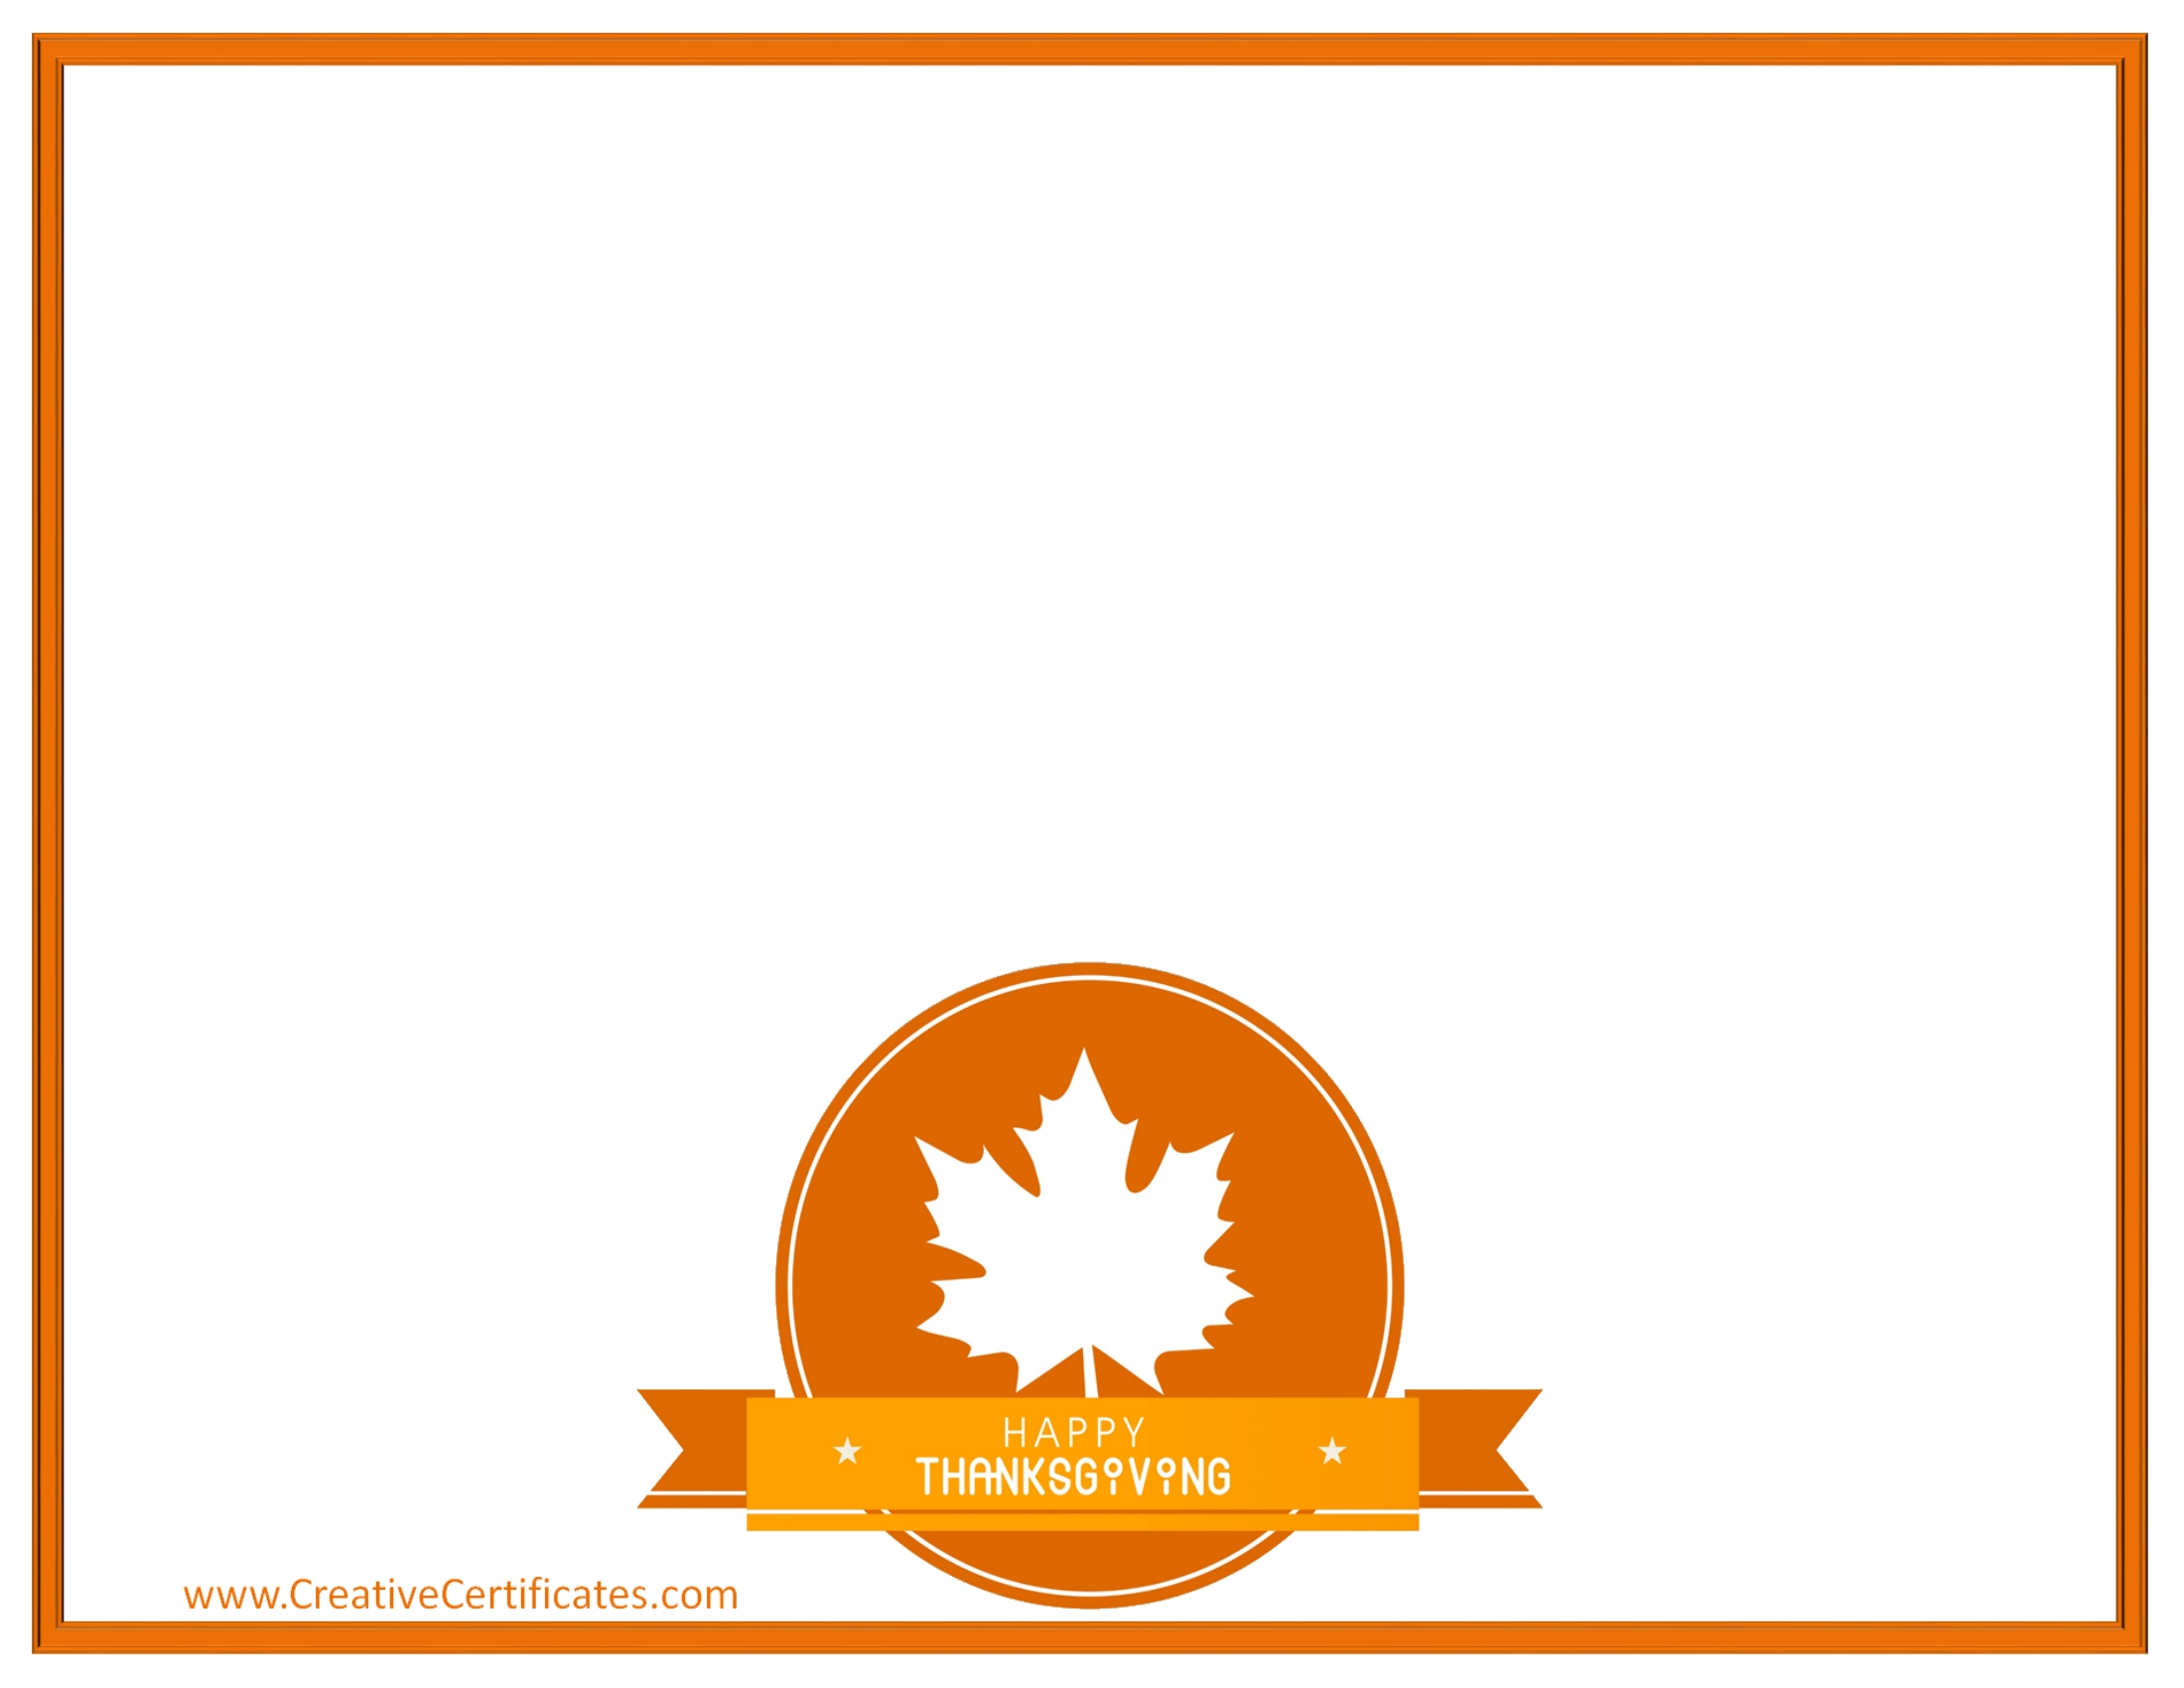 2200x1700 Thanksgiving border images free thanksgiving borders 8